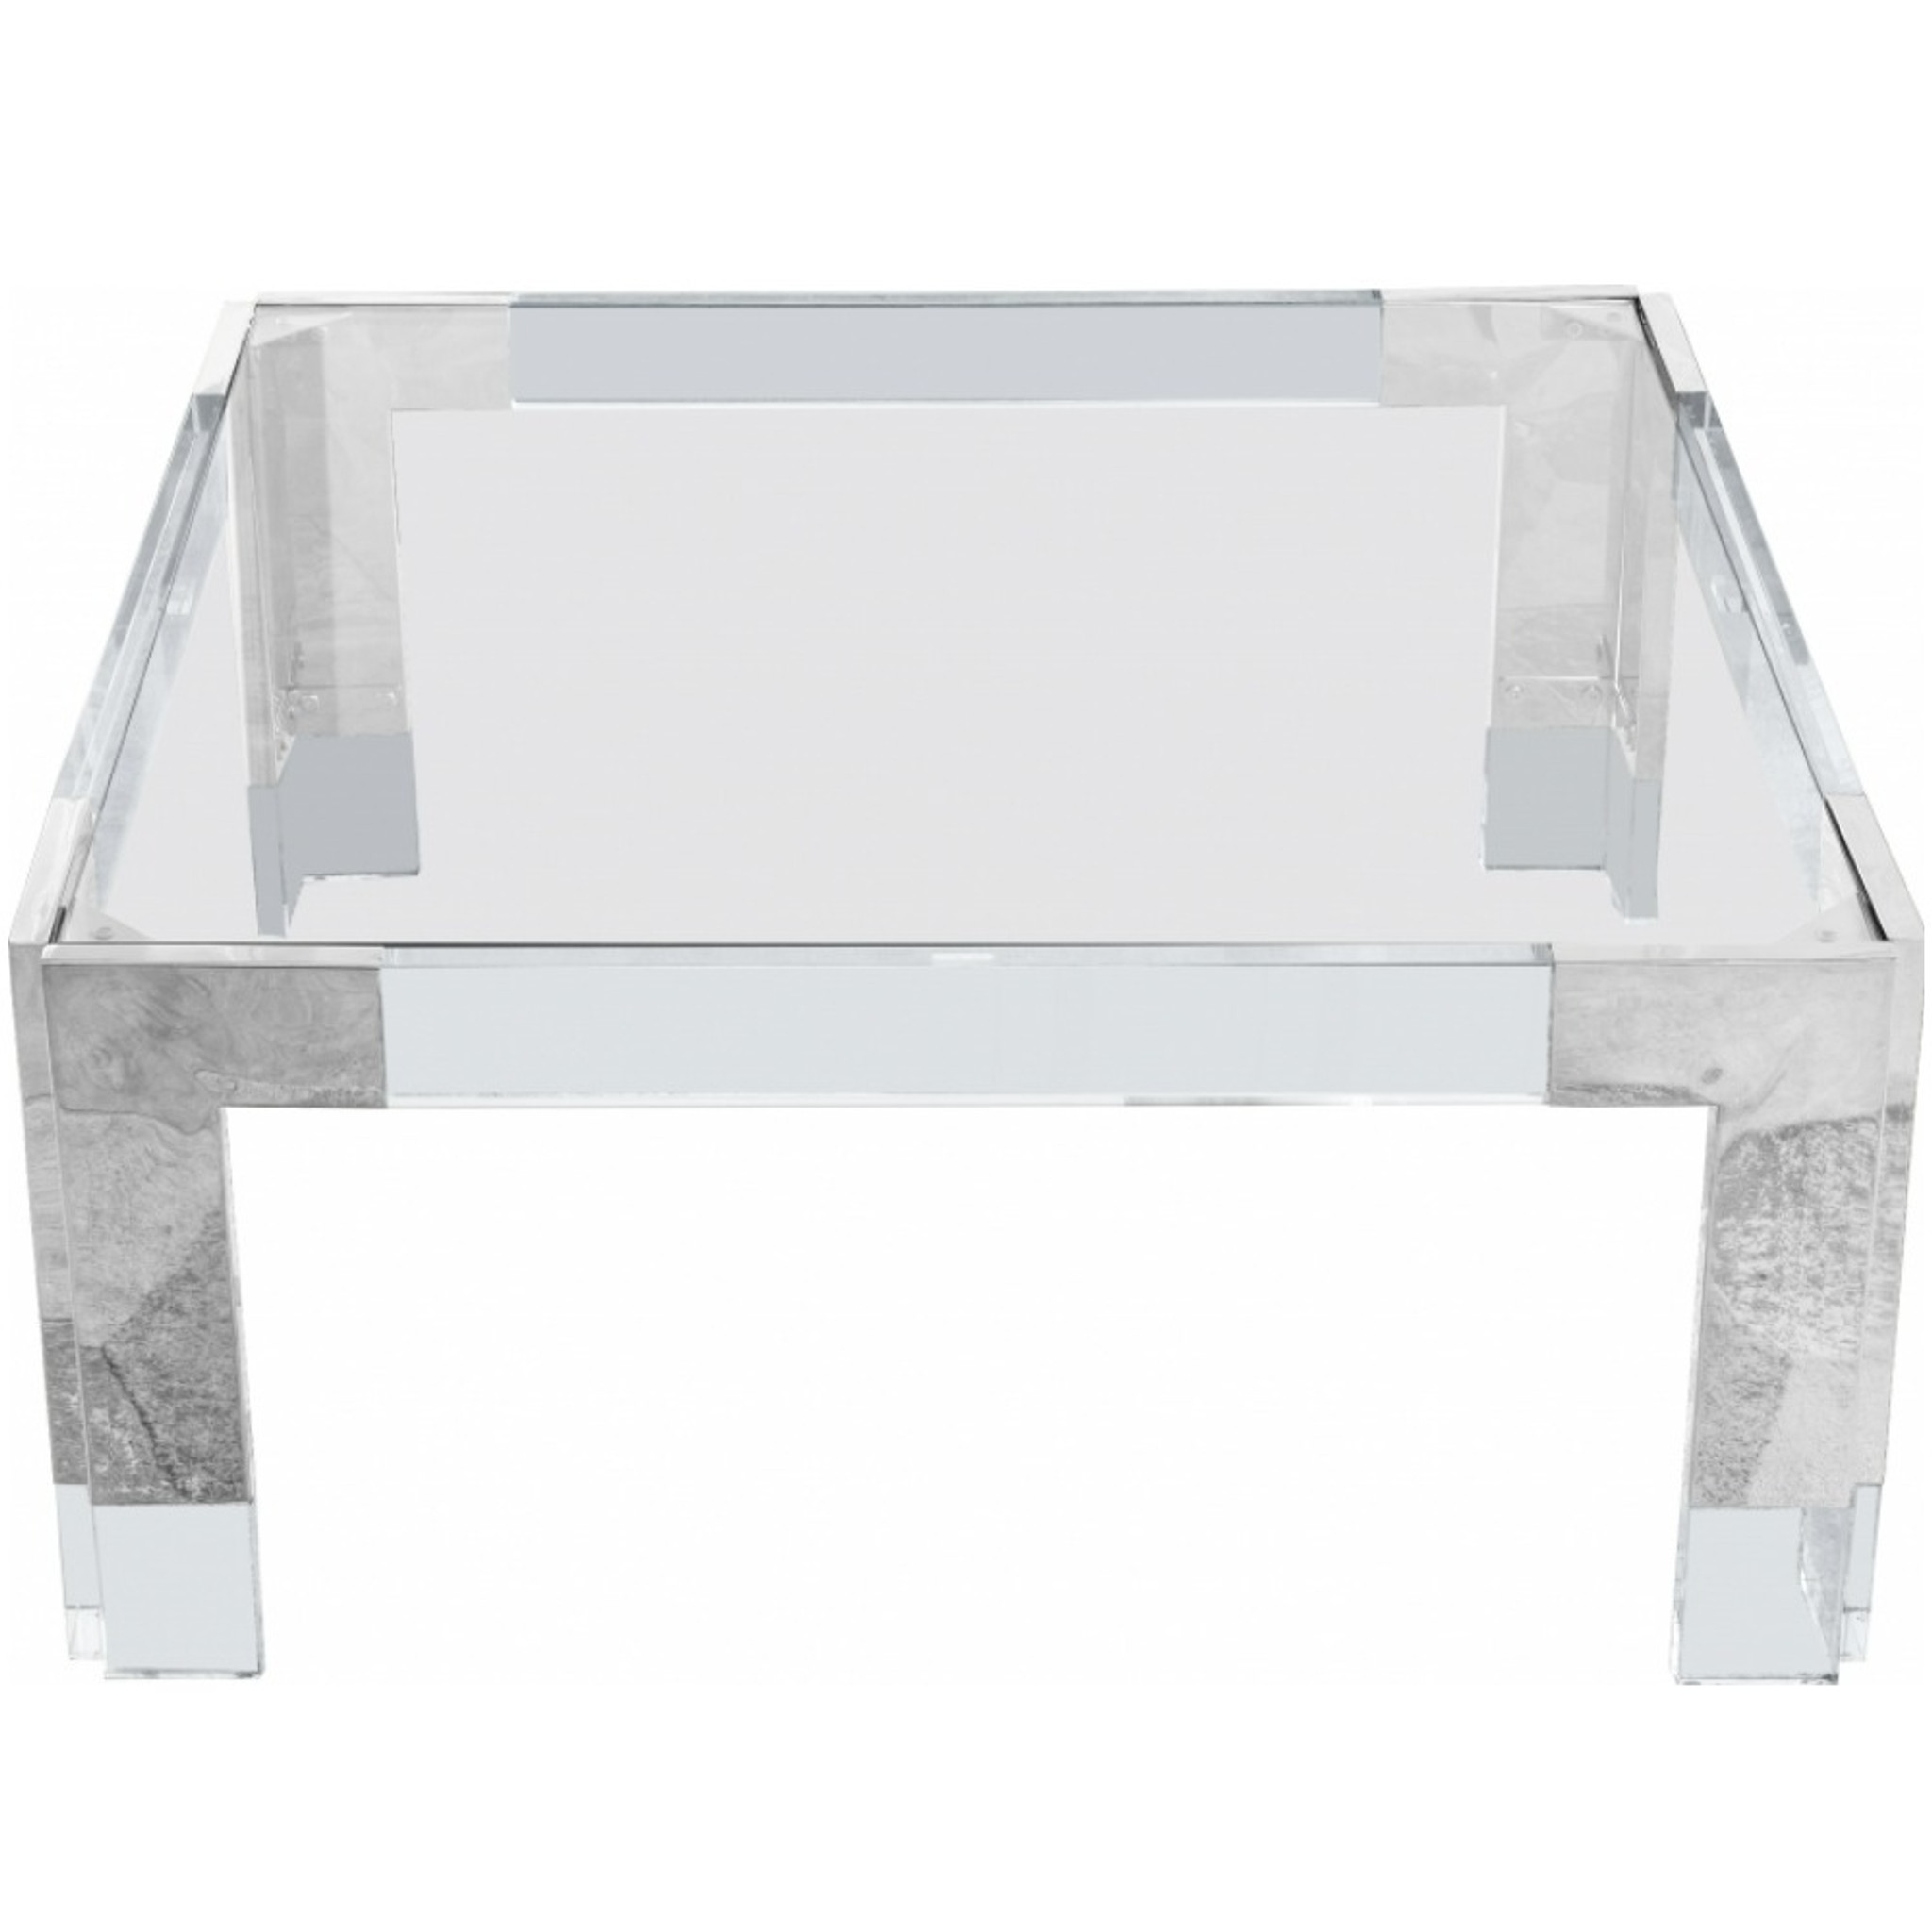 Retro Modern Chrome and Lucite Coffee Table with Glass Top